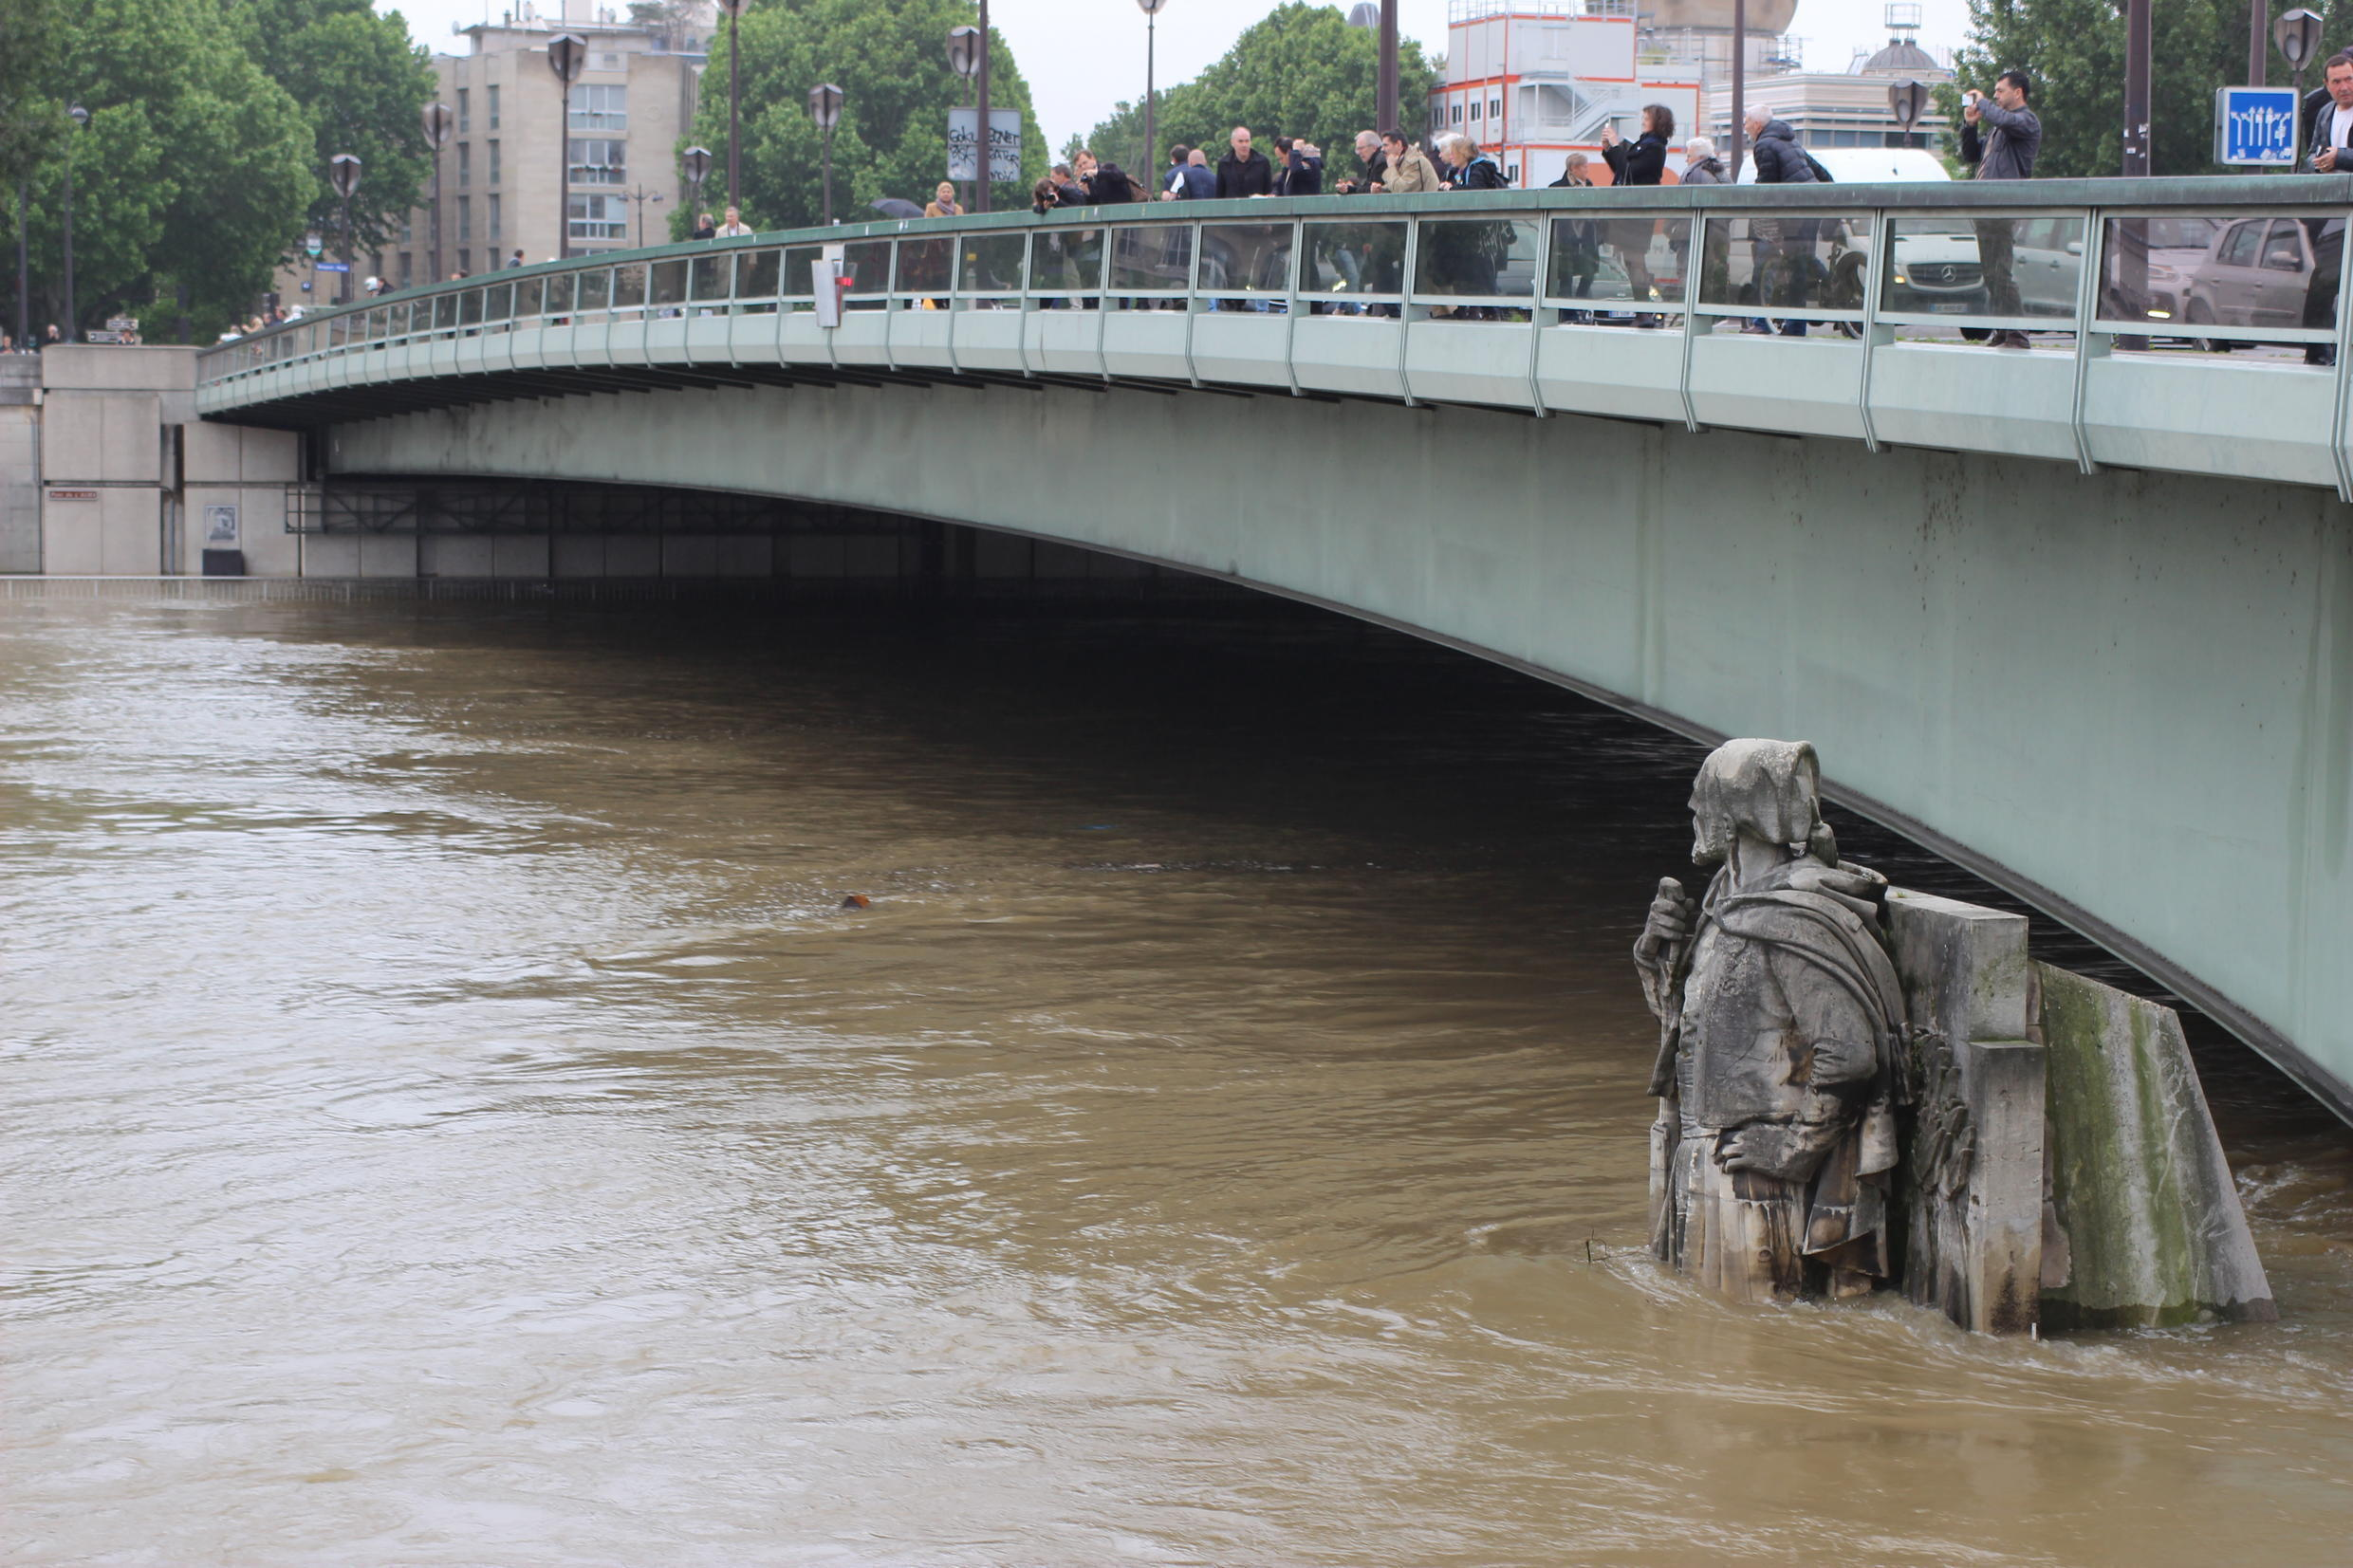 Parisians unofficially use the Zouave (soldier from a regiment in French North Africa) of Alma Bridge to measure flood waters. During the infamous flood of 1910, the Seine rose above his head.